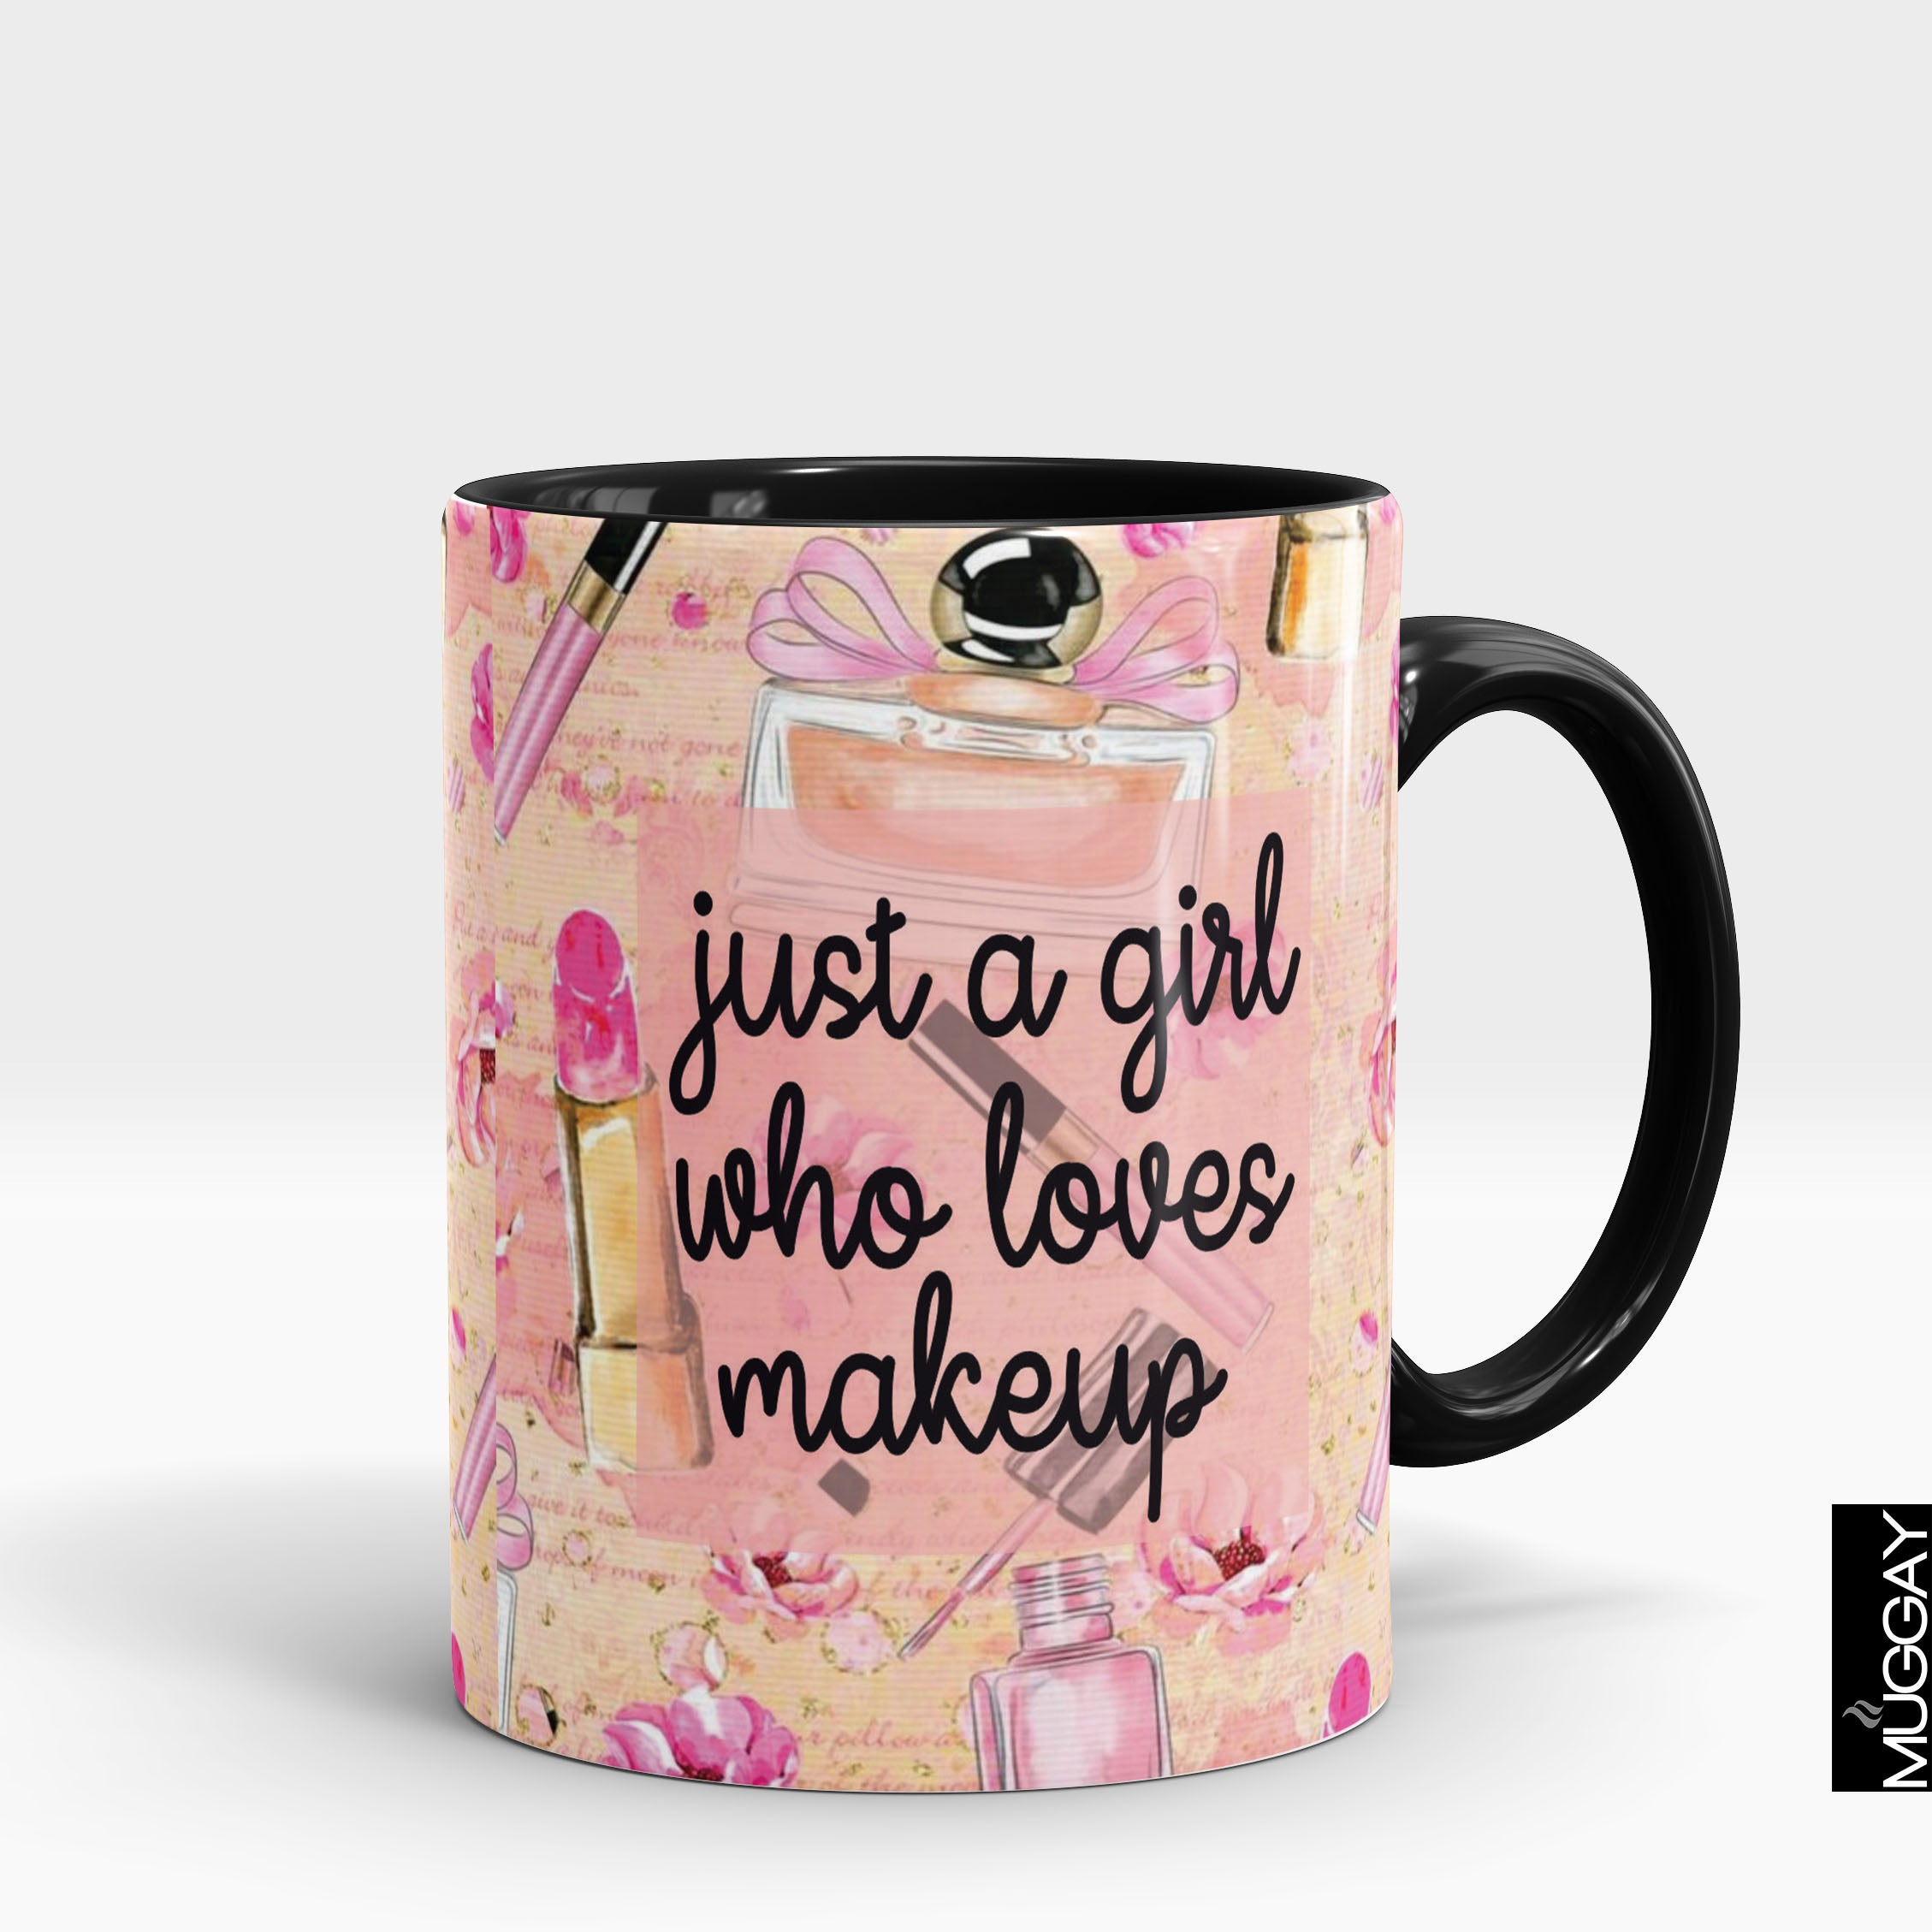 Makeup theme mugs -1